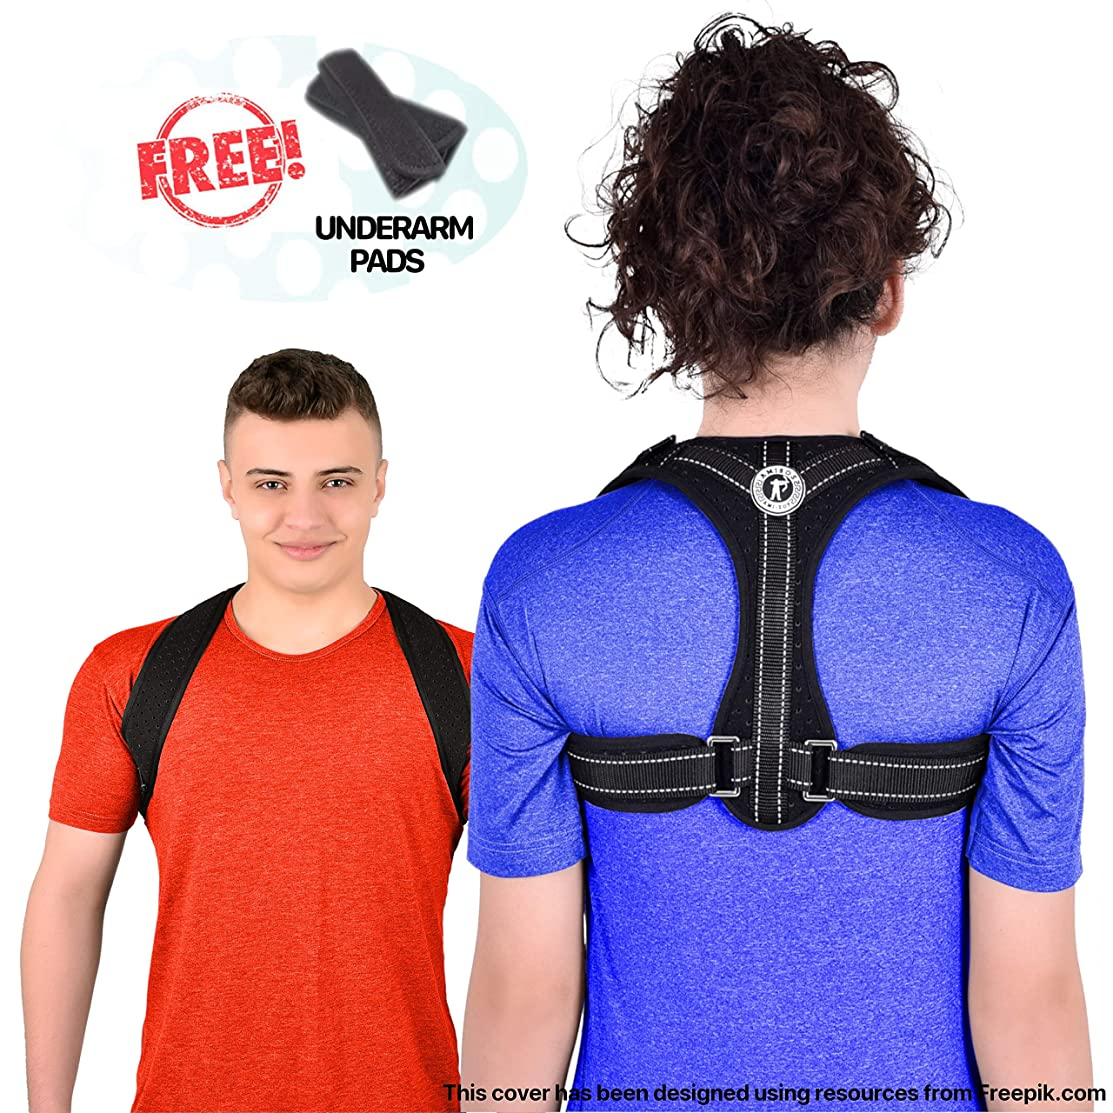 Posture Corrector Back Brace - for Women and Men, Discreet Under Clothes, FDA Approved, Adjustable and Breathable, Clavicle Shoulder Support for Back Pain Relief with Underarm Pads